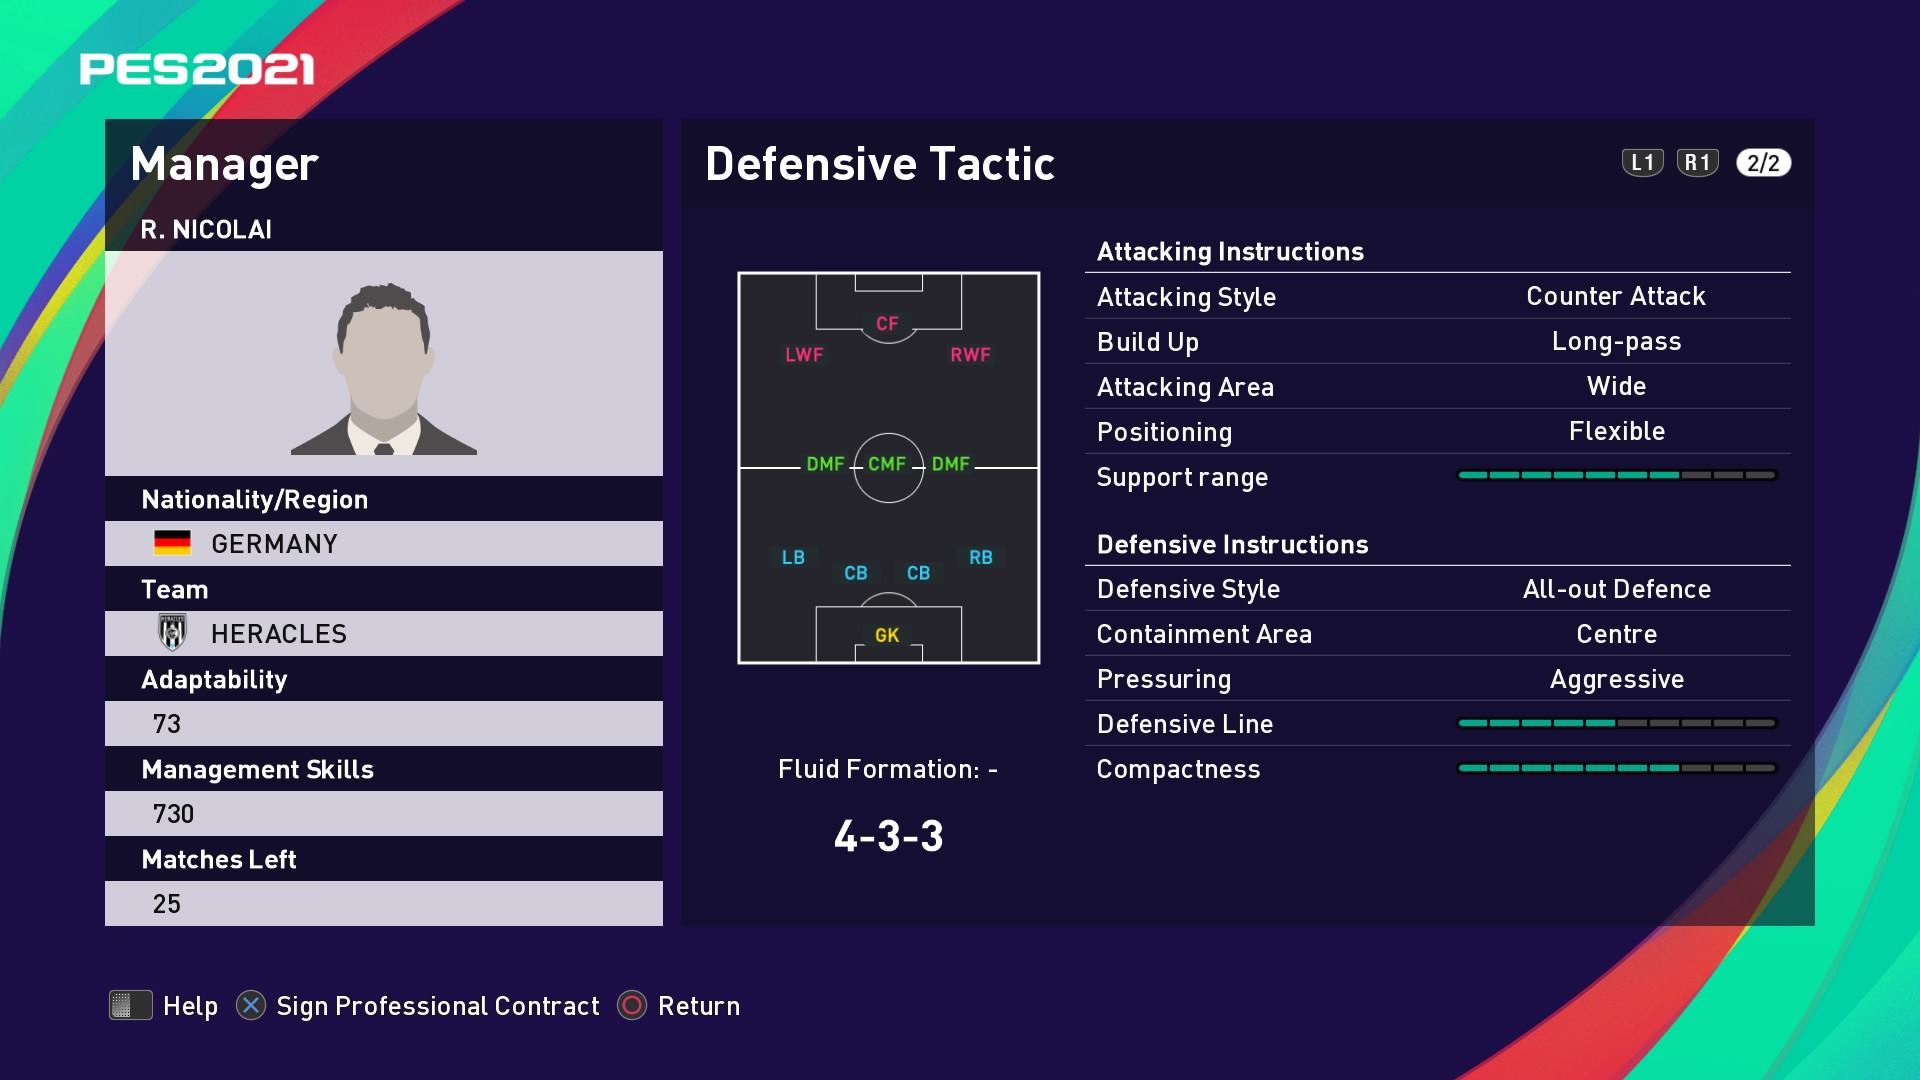 R. Nicolai (Frank Wormuth) Defensive Tactic in PES 2021 myClub